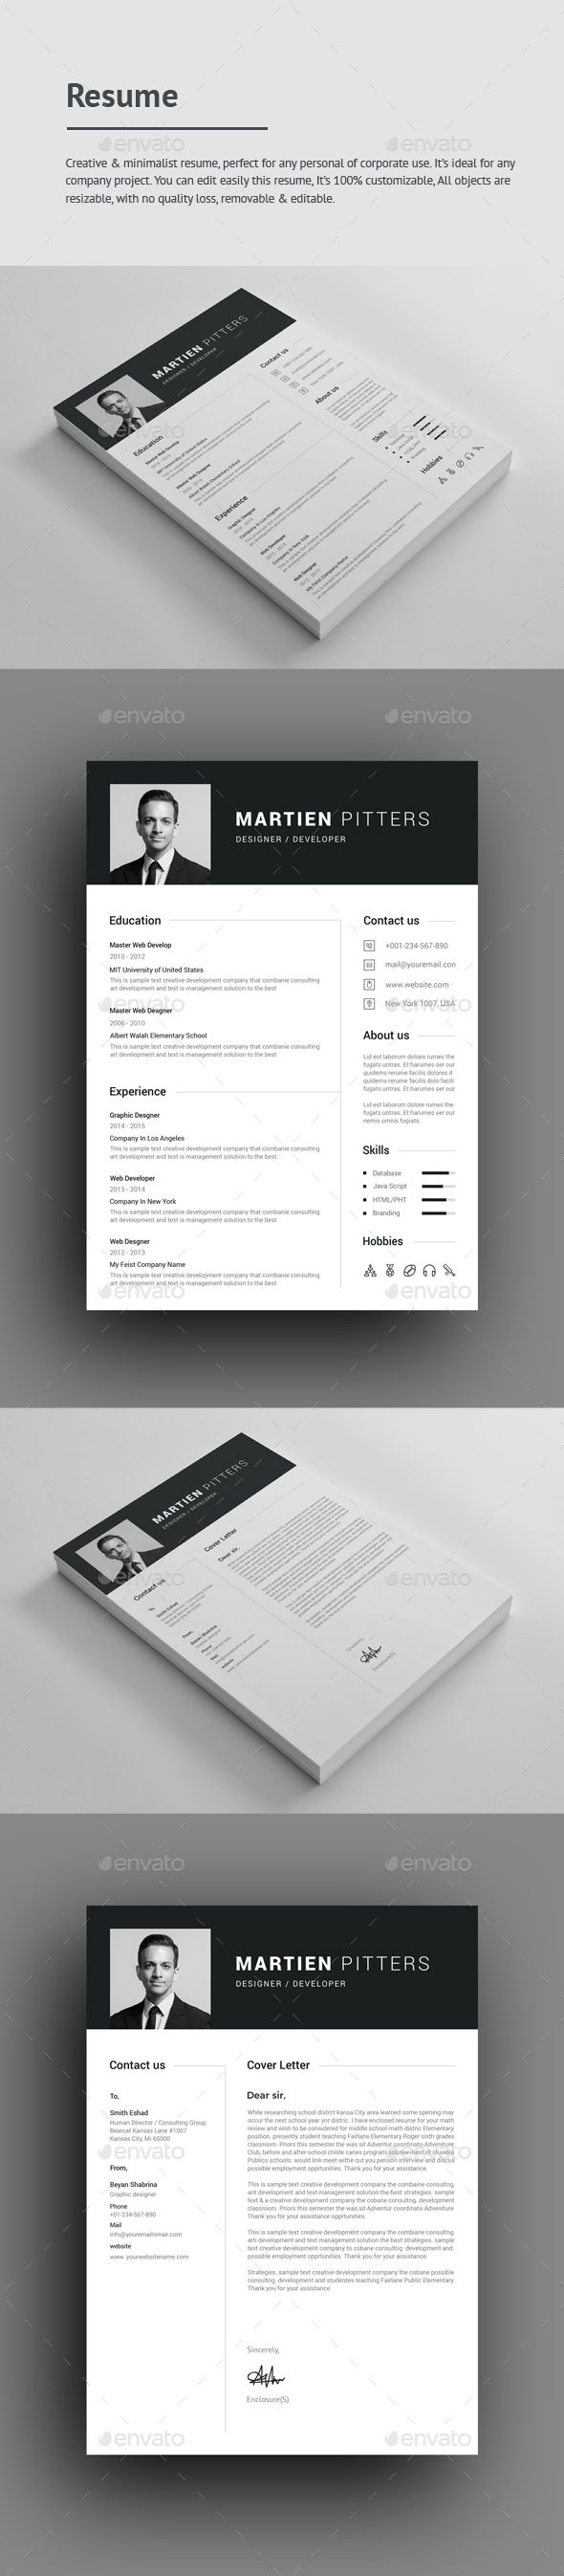 printable resume format%0A Buy Resume by GraphStyle on GraphicRiver  File Information Size print  dimension with bleed   guidelines  well layered organised  PSD